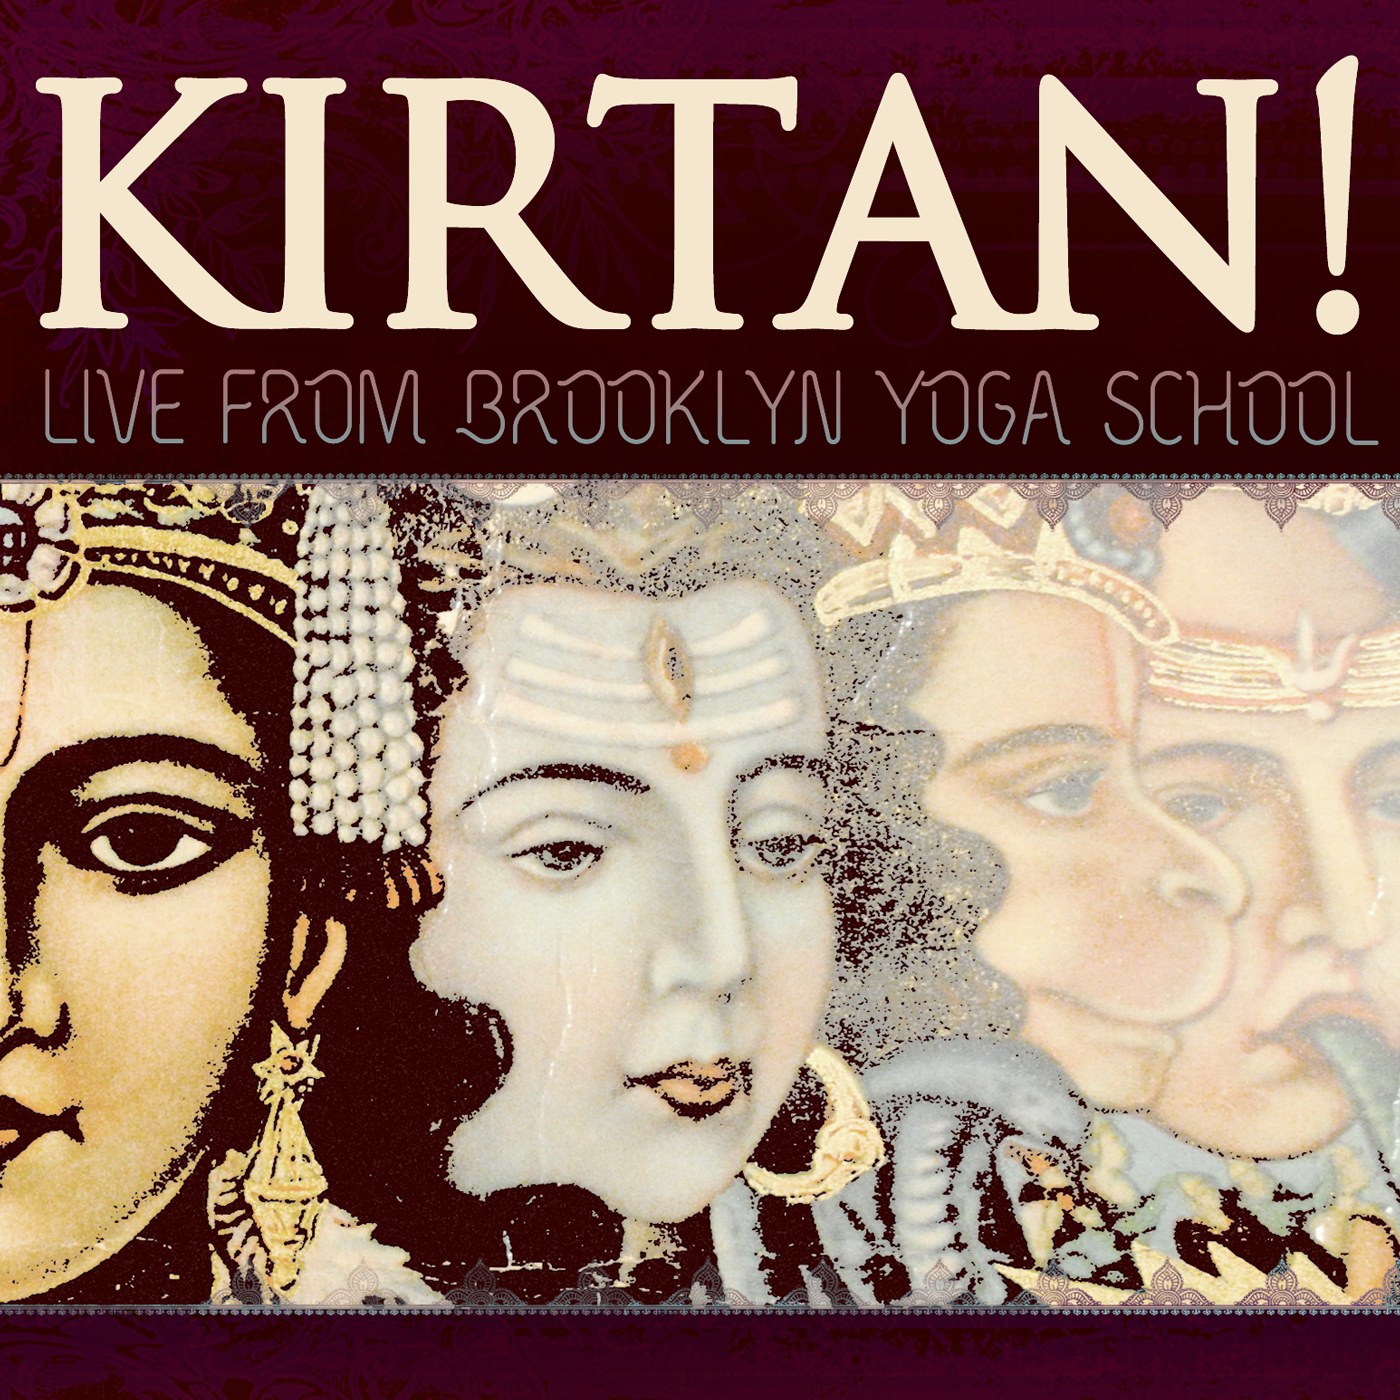 Kirtan! Live From Brooklyn Yoga School